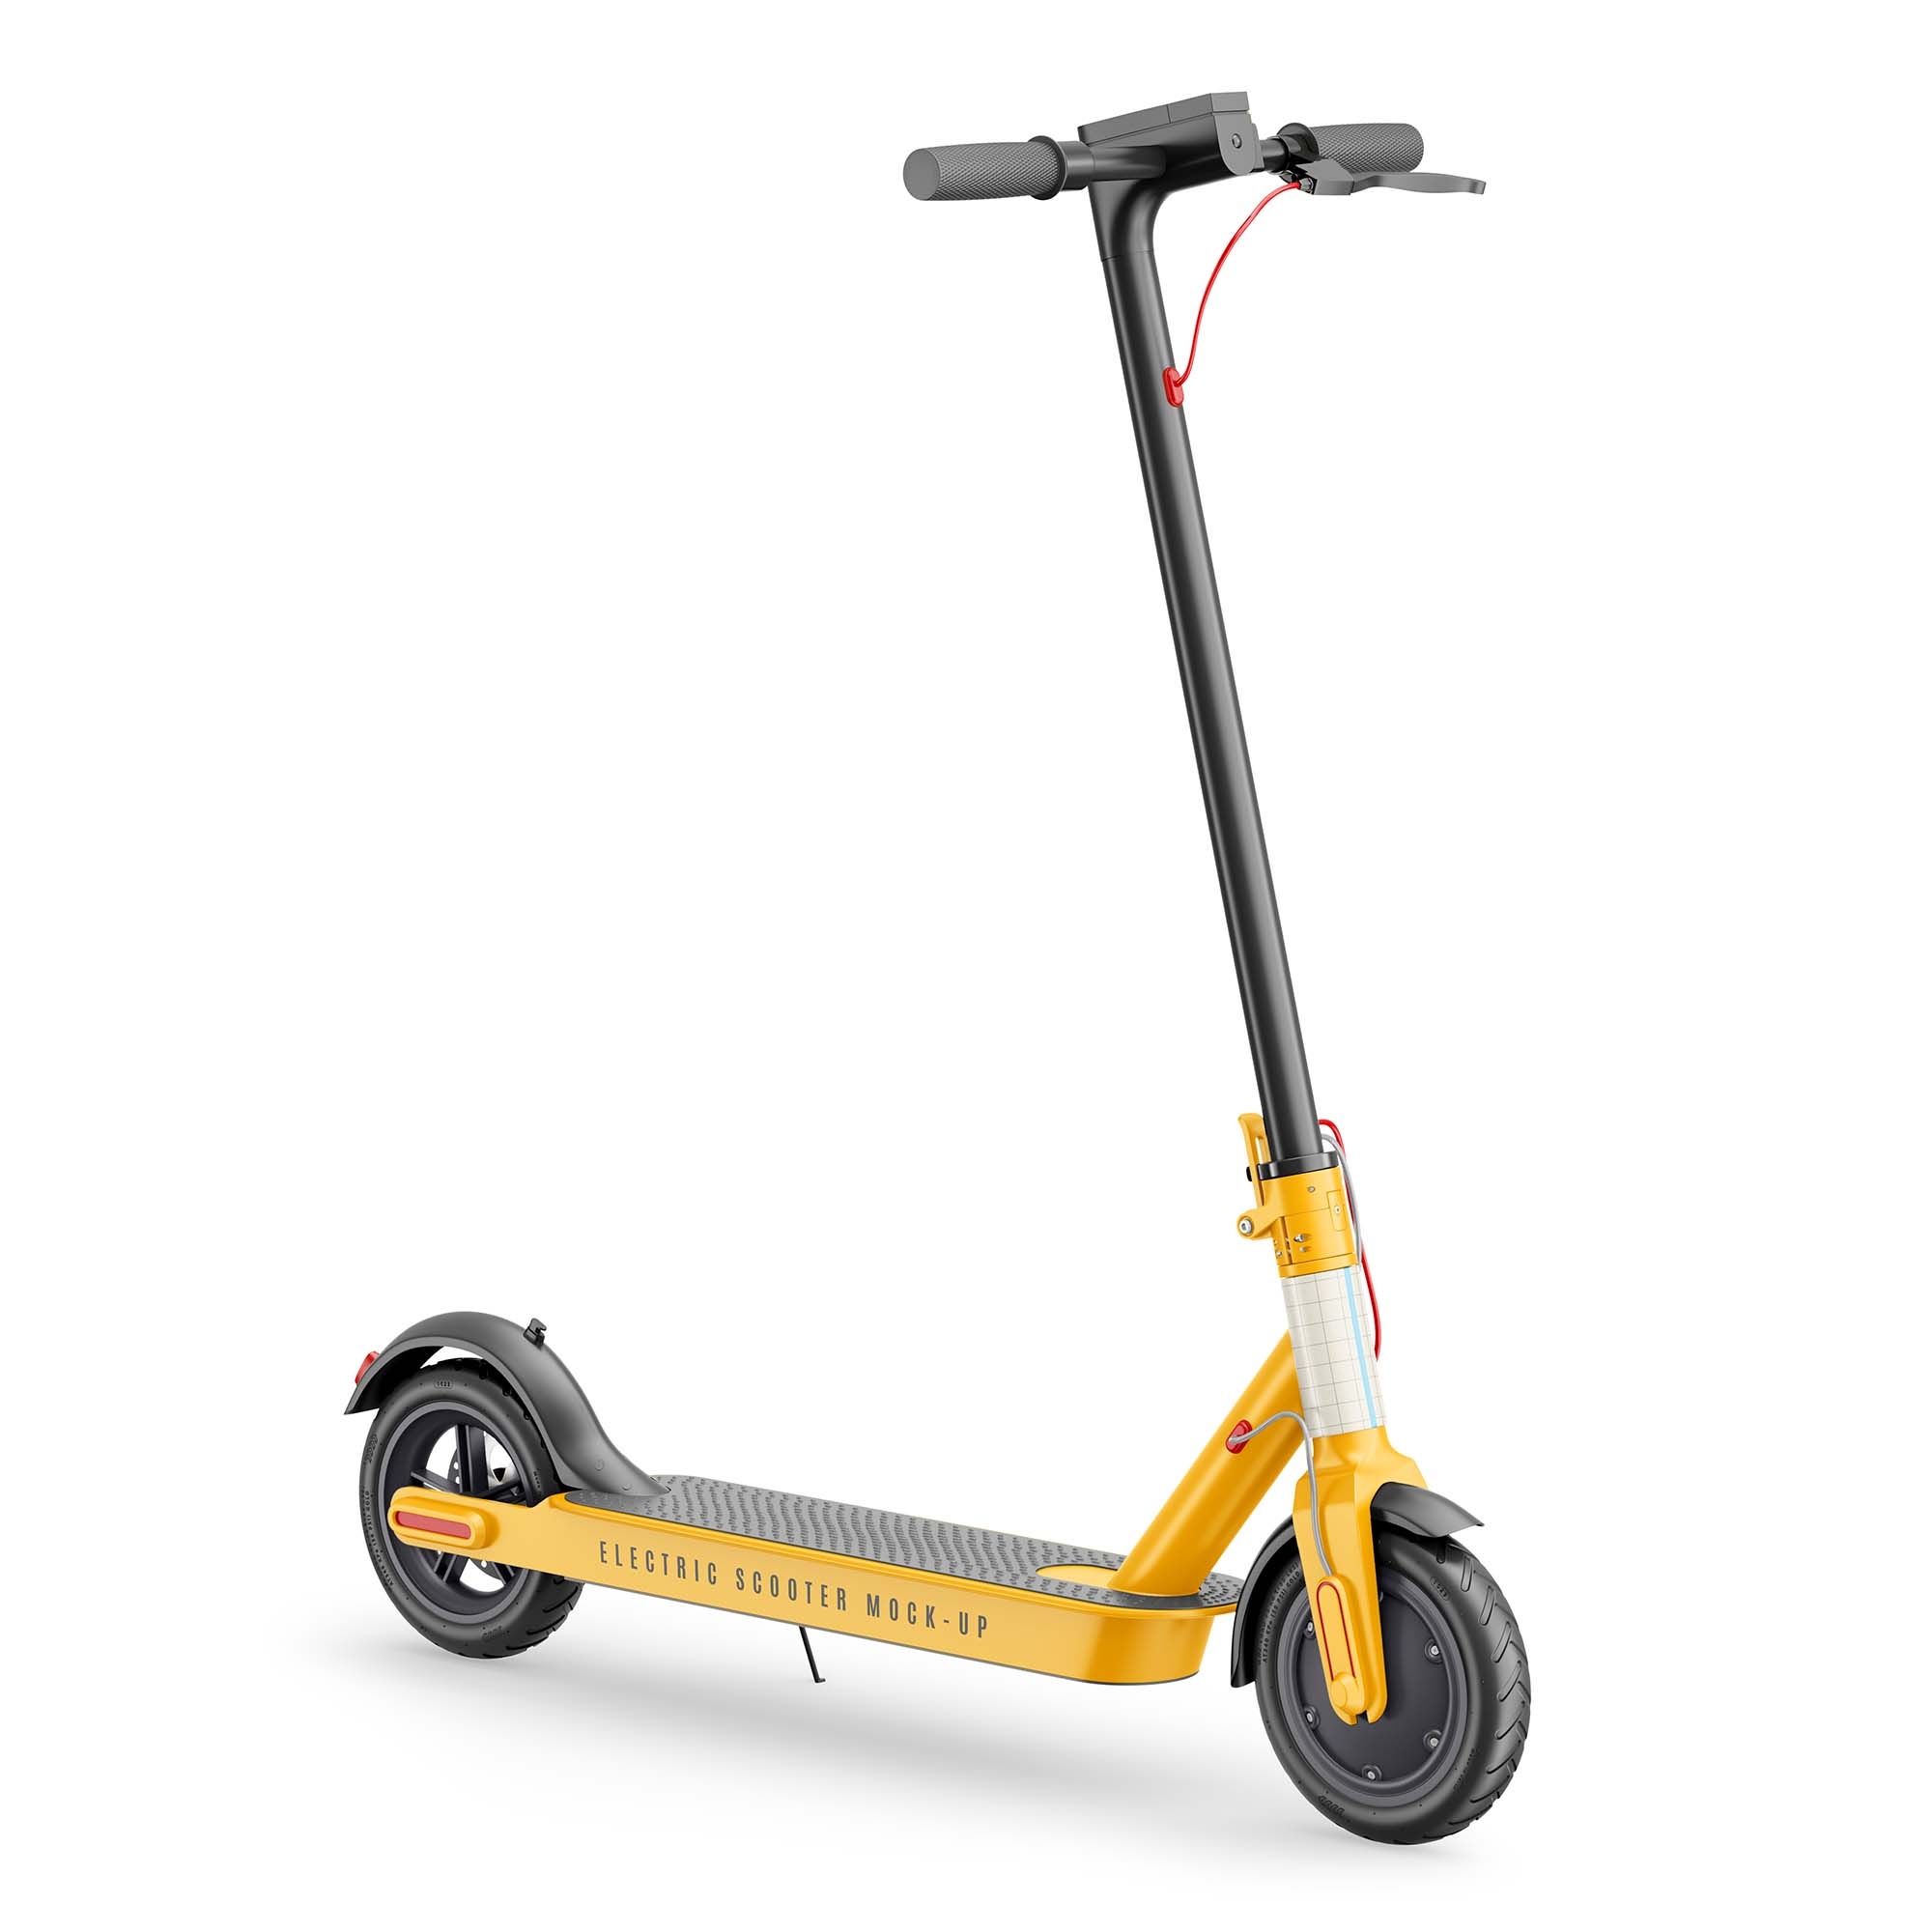 Electric Scooter Mockup